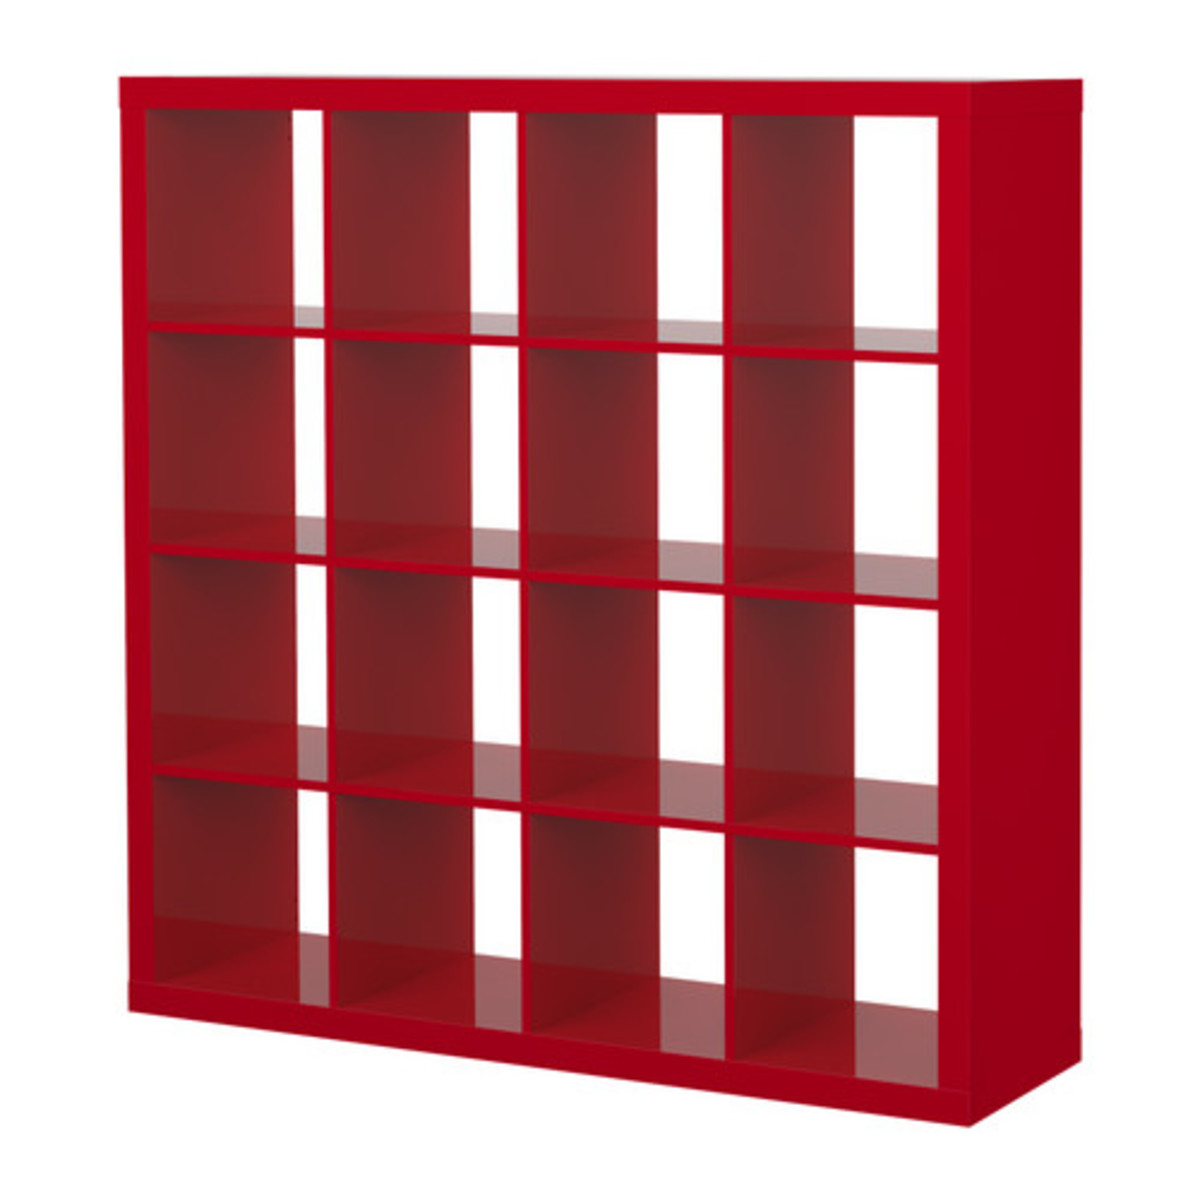 This large bright shelving unit can subdivide a room into sleeping and study while still letting light through.